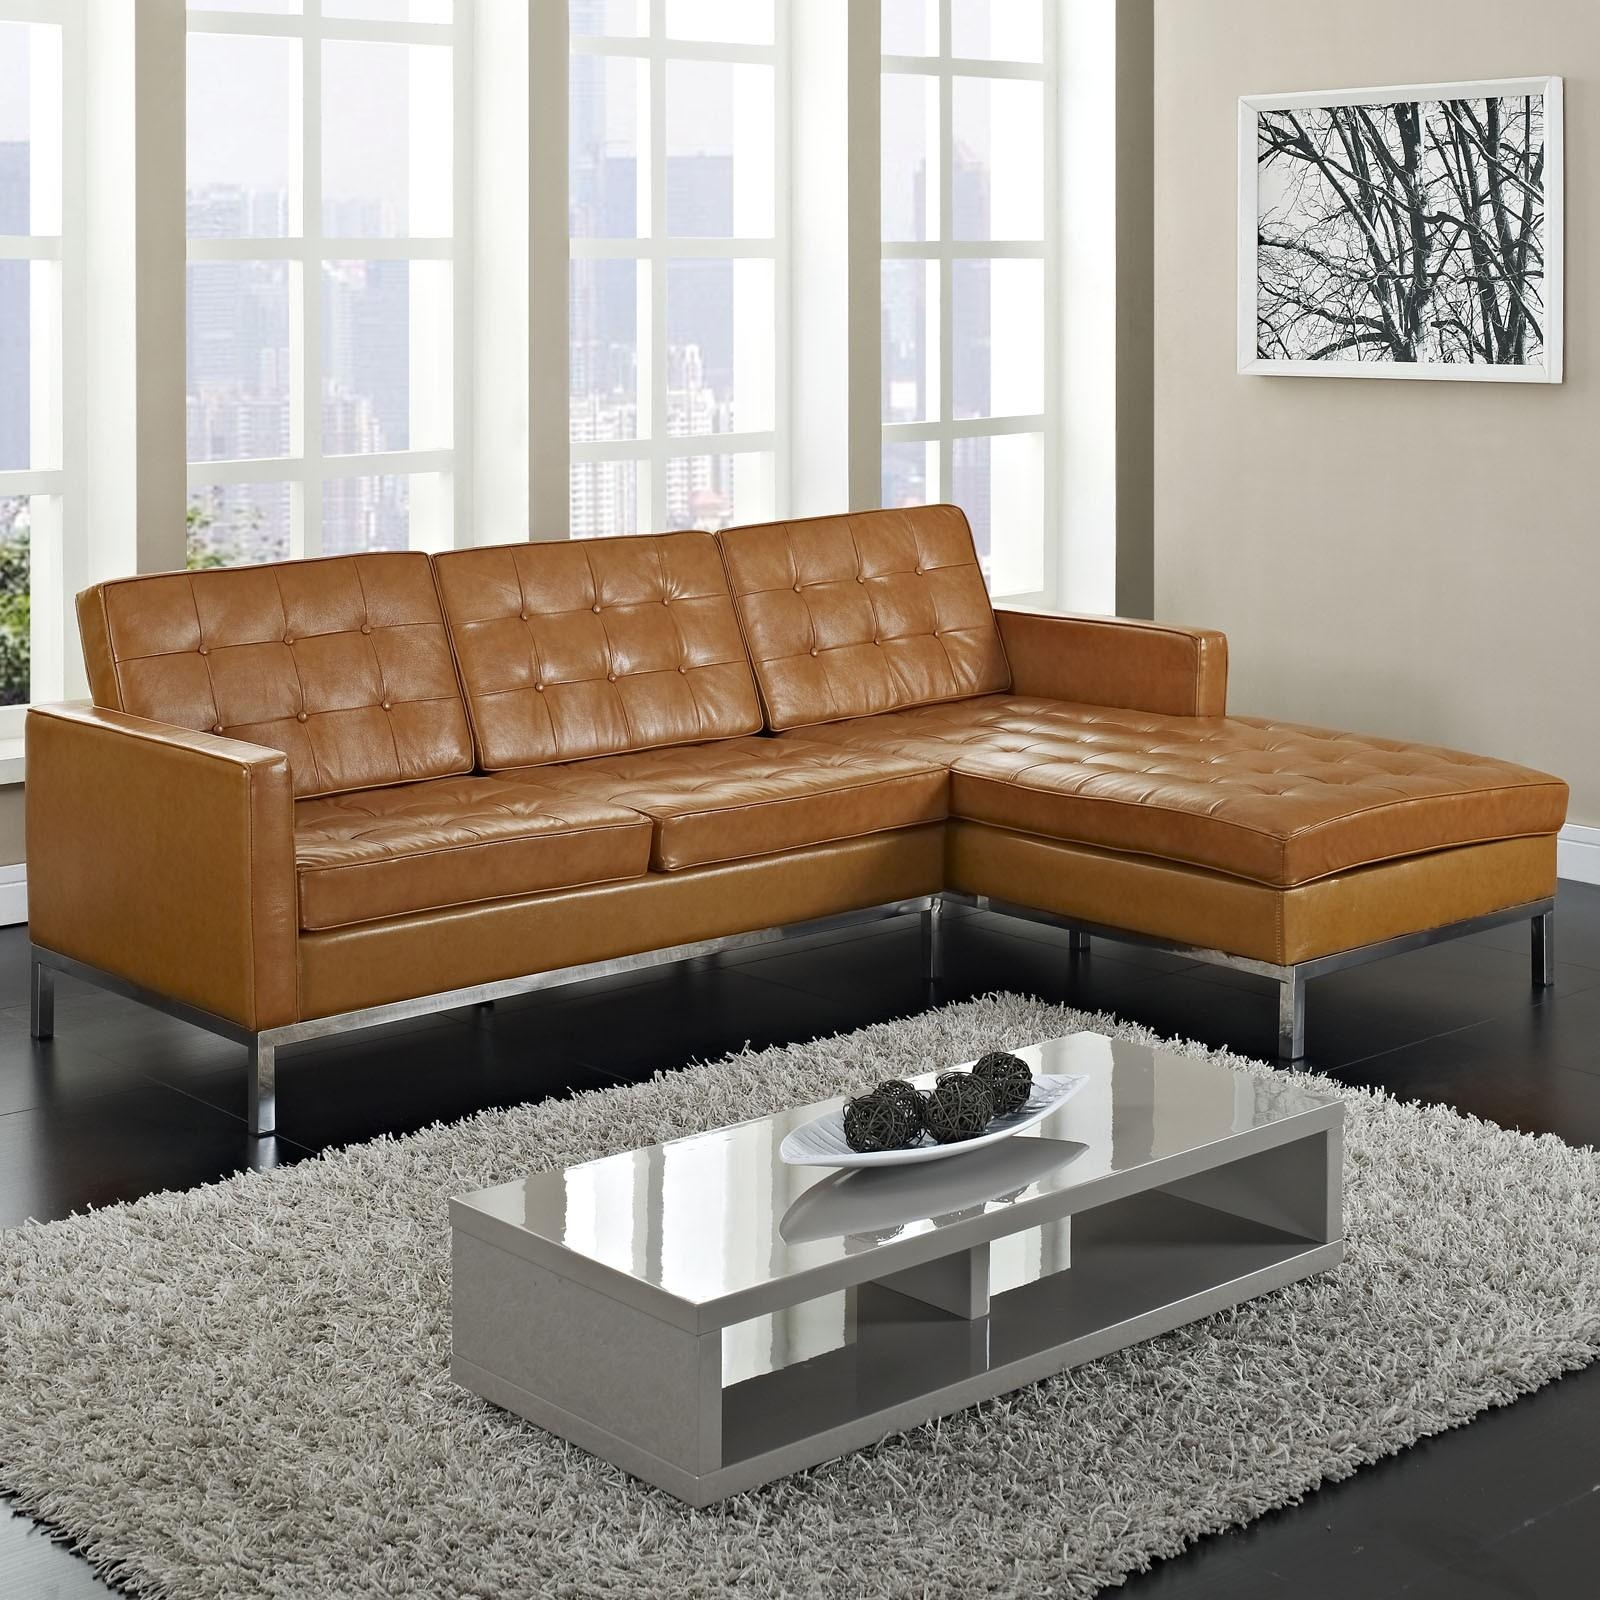 Fabulous White Leather Sleeper Sofa Best Interior Design: 20 Best Contemporary Brown Leather Sofas